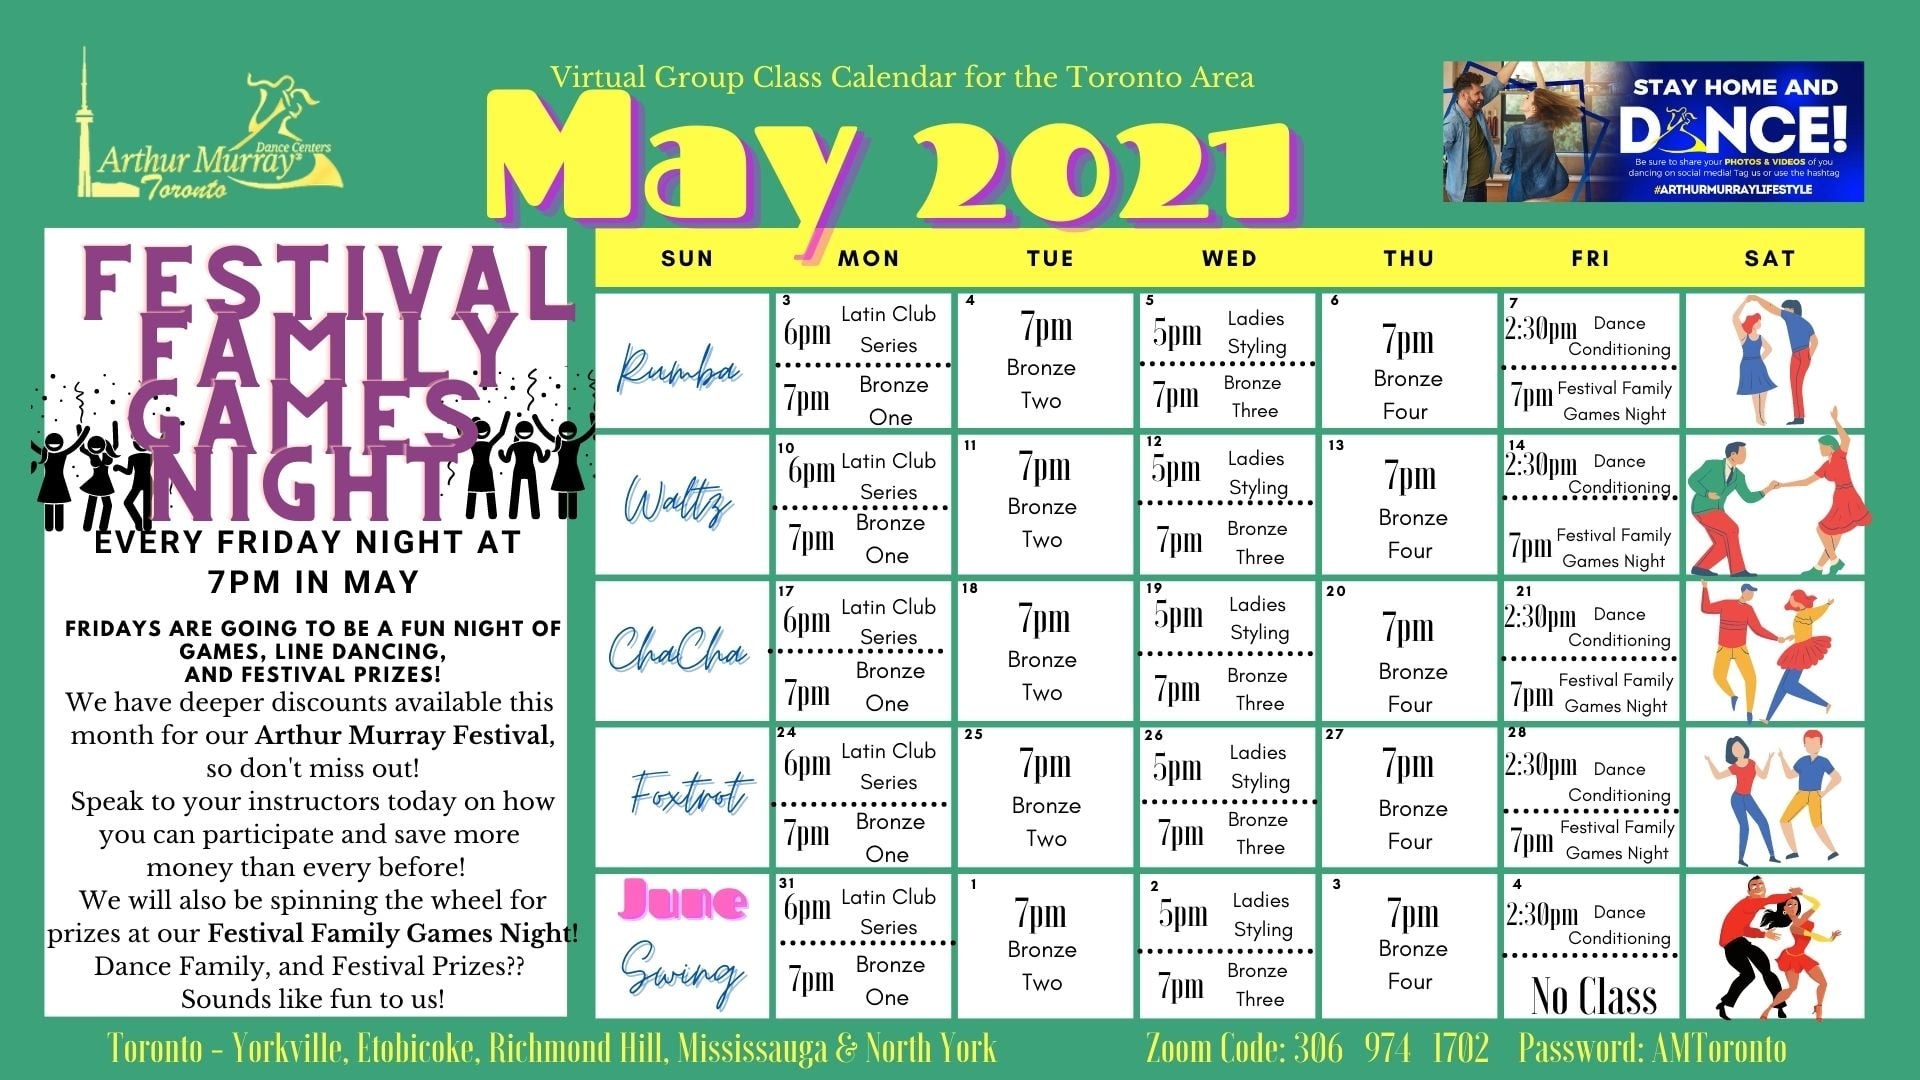 Arthur Murray Dance Studio Toronto - Etobicoke virtual class schedule for the month of May 2021 including weekly private dance lessons hosted on zoom as well as group classes and fun dance studio weekly events for dance students beginners welcome